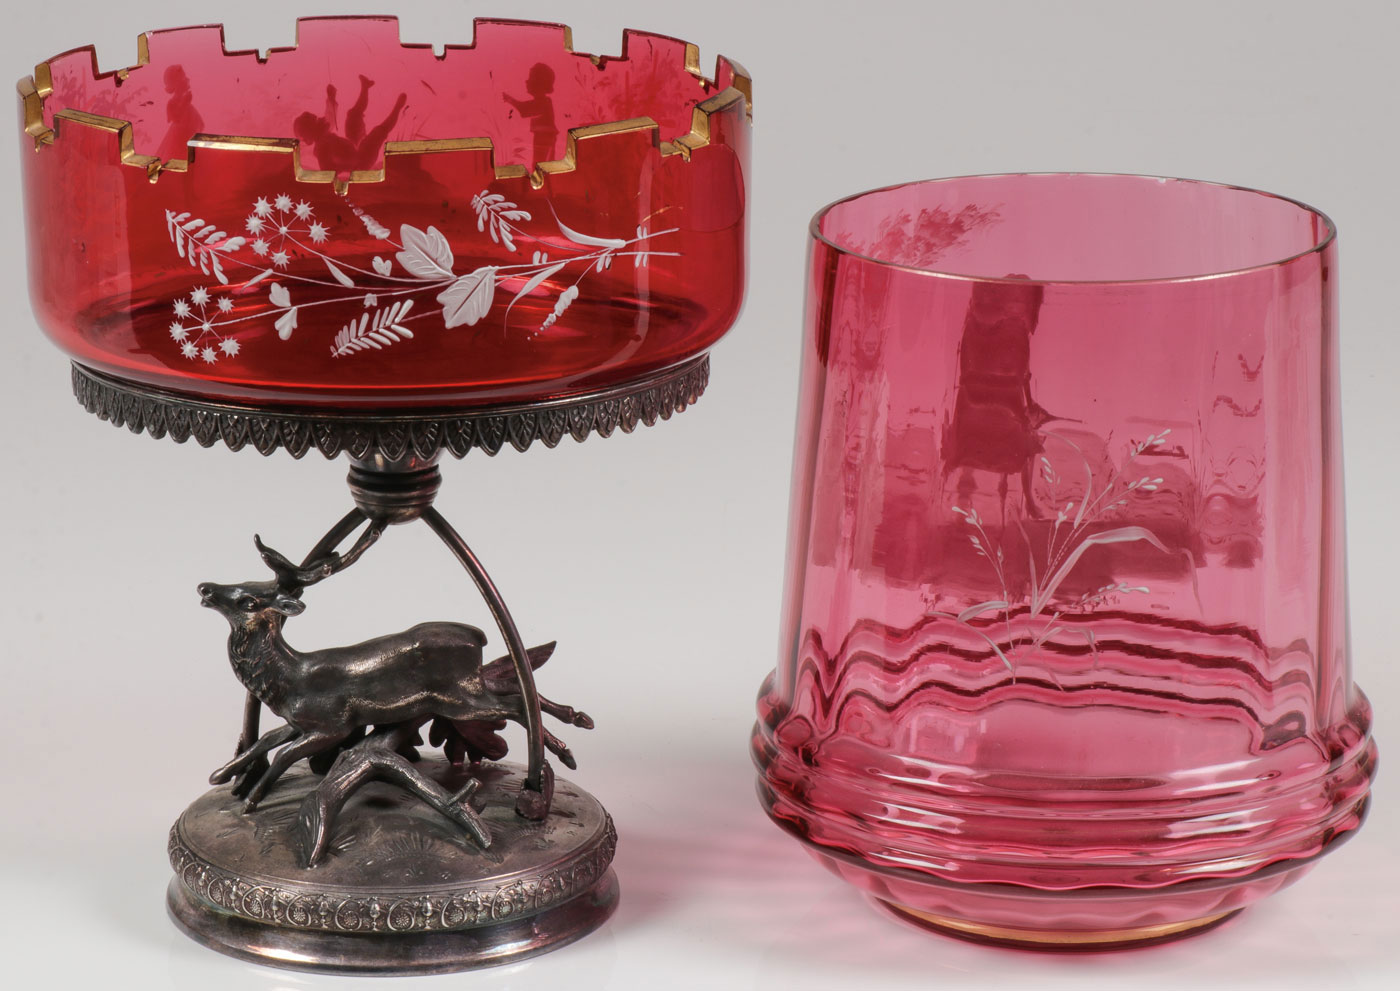 Lot 9 - PAIR OF MARY GREGORY CENTERPIECE BOWLS, C. 1900